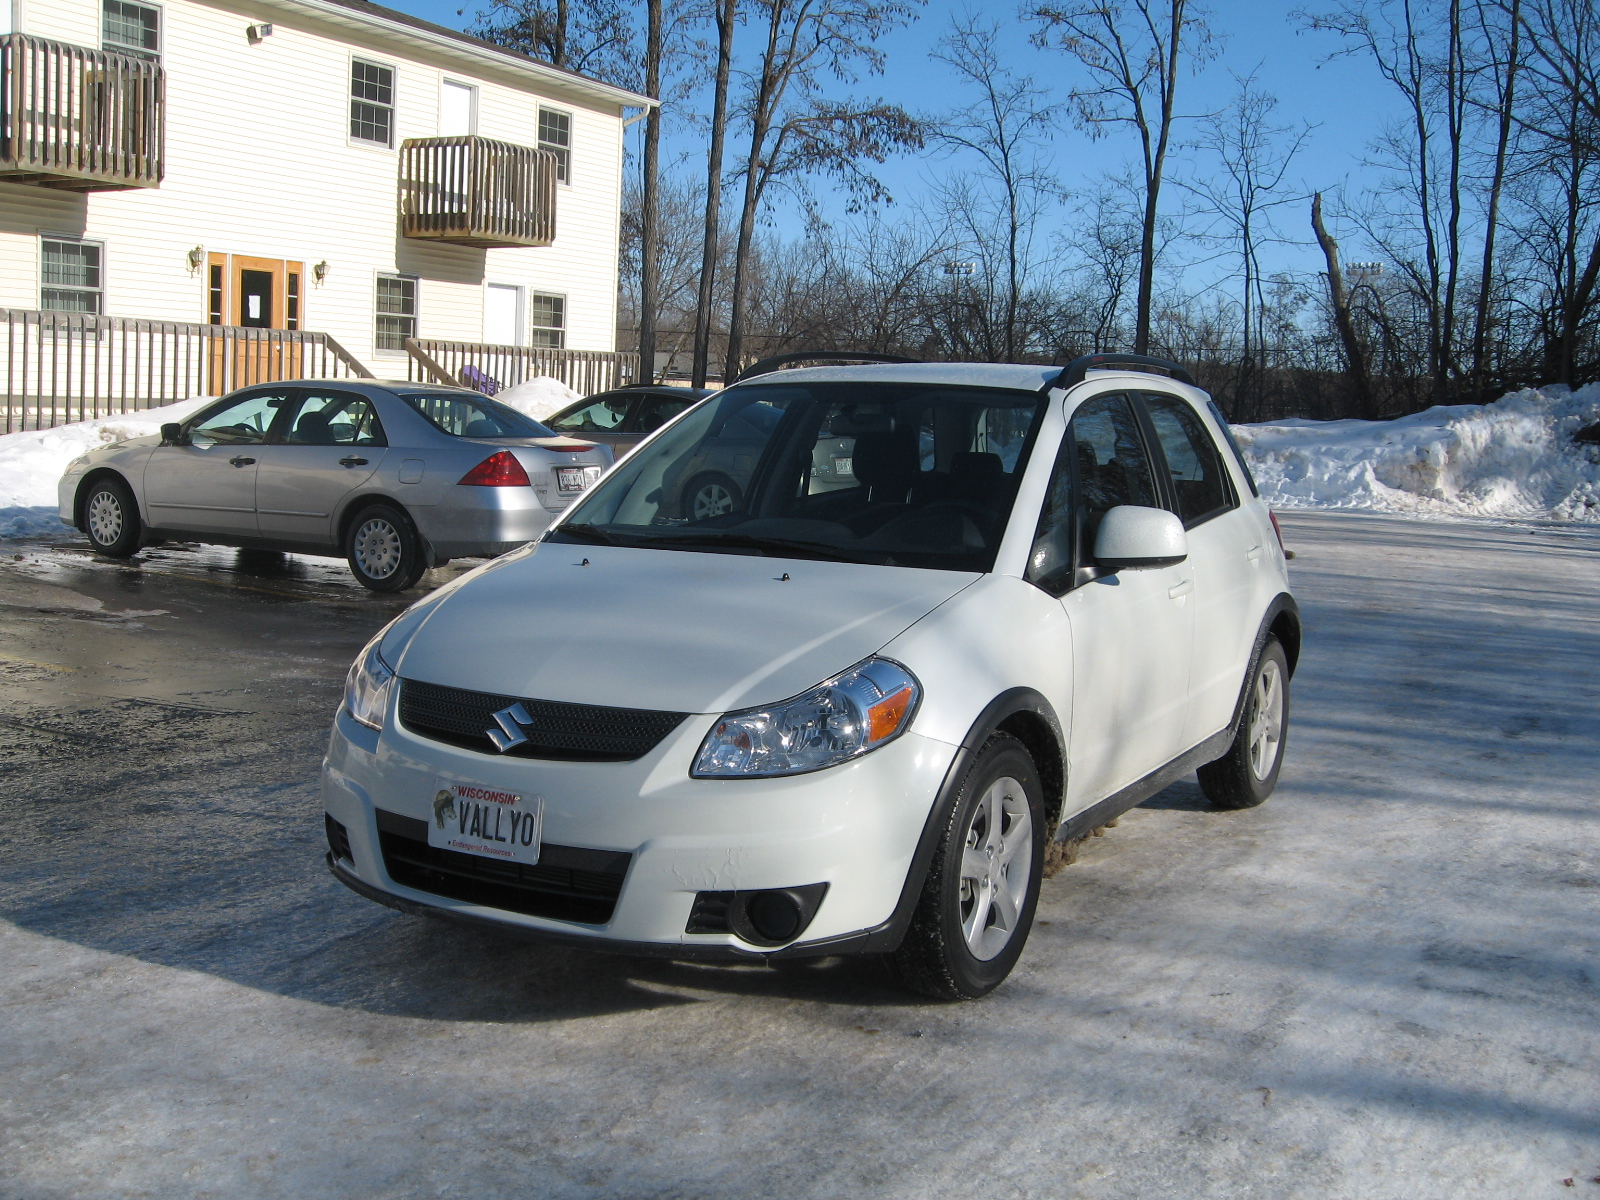 2009 Suzuki SX4 Crossover Base AWD picture